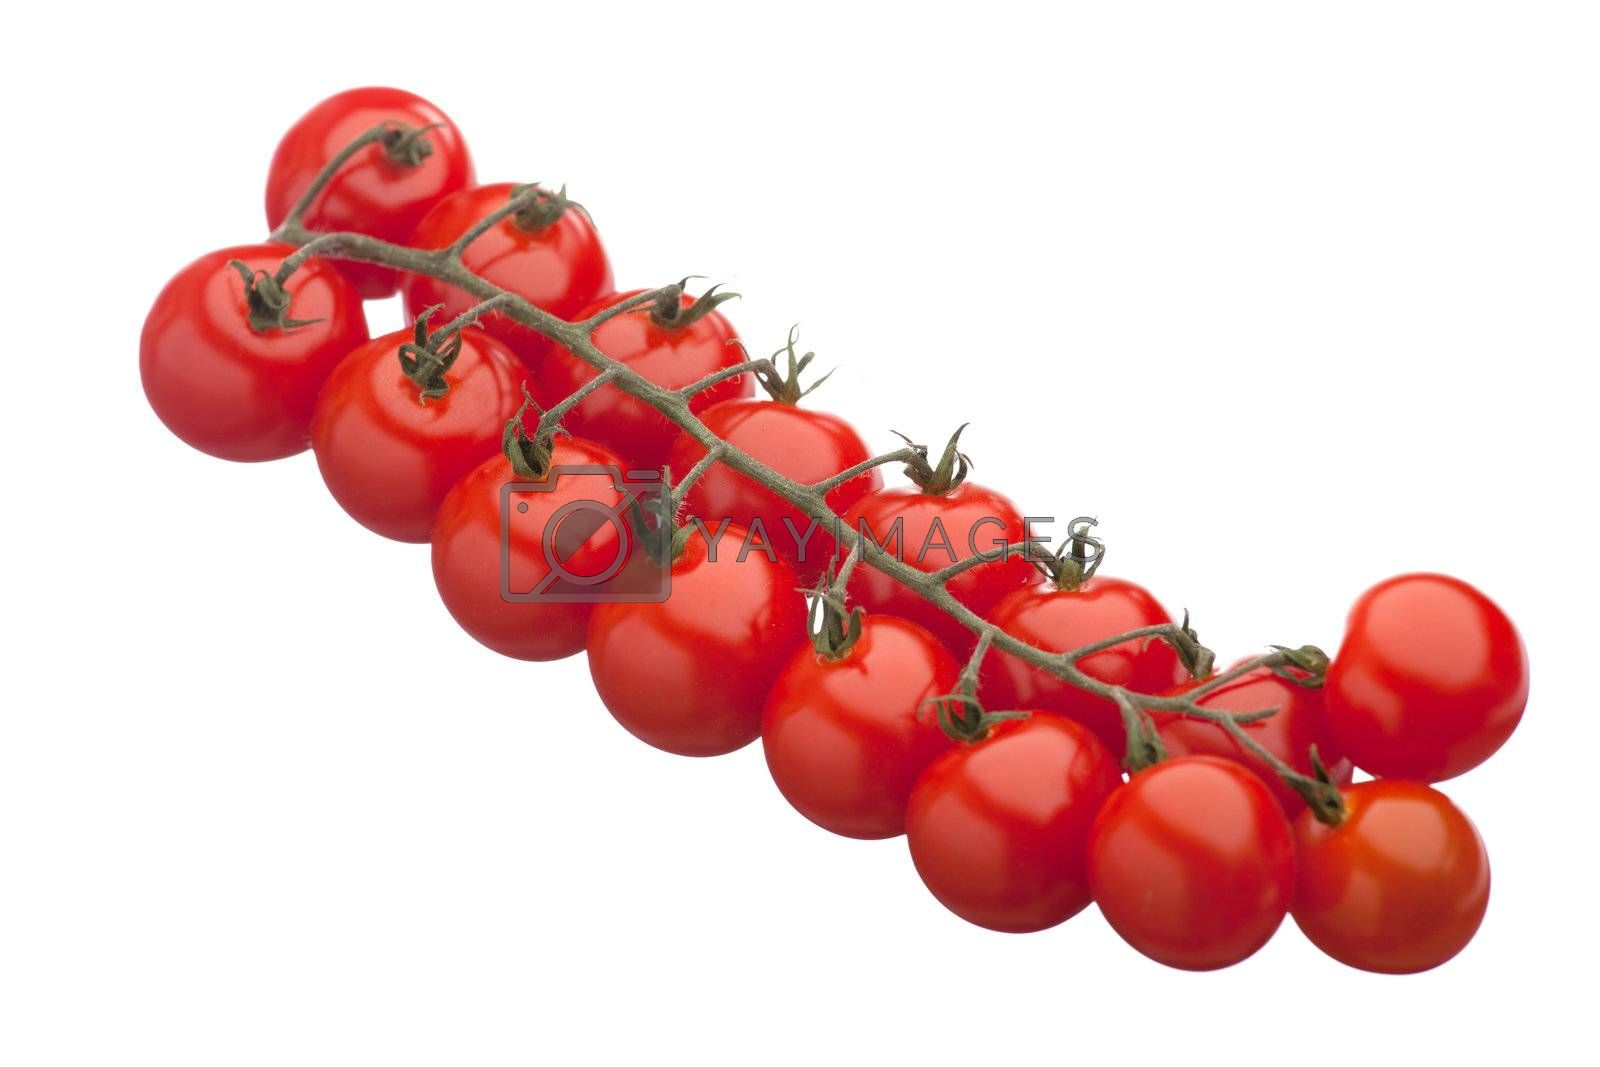 Cluster of fresh ripe red cherry tomatoes close-up isolated